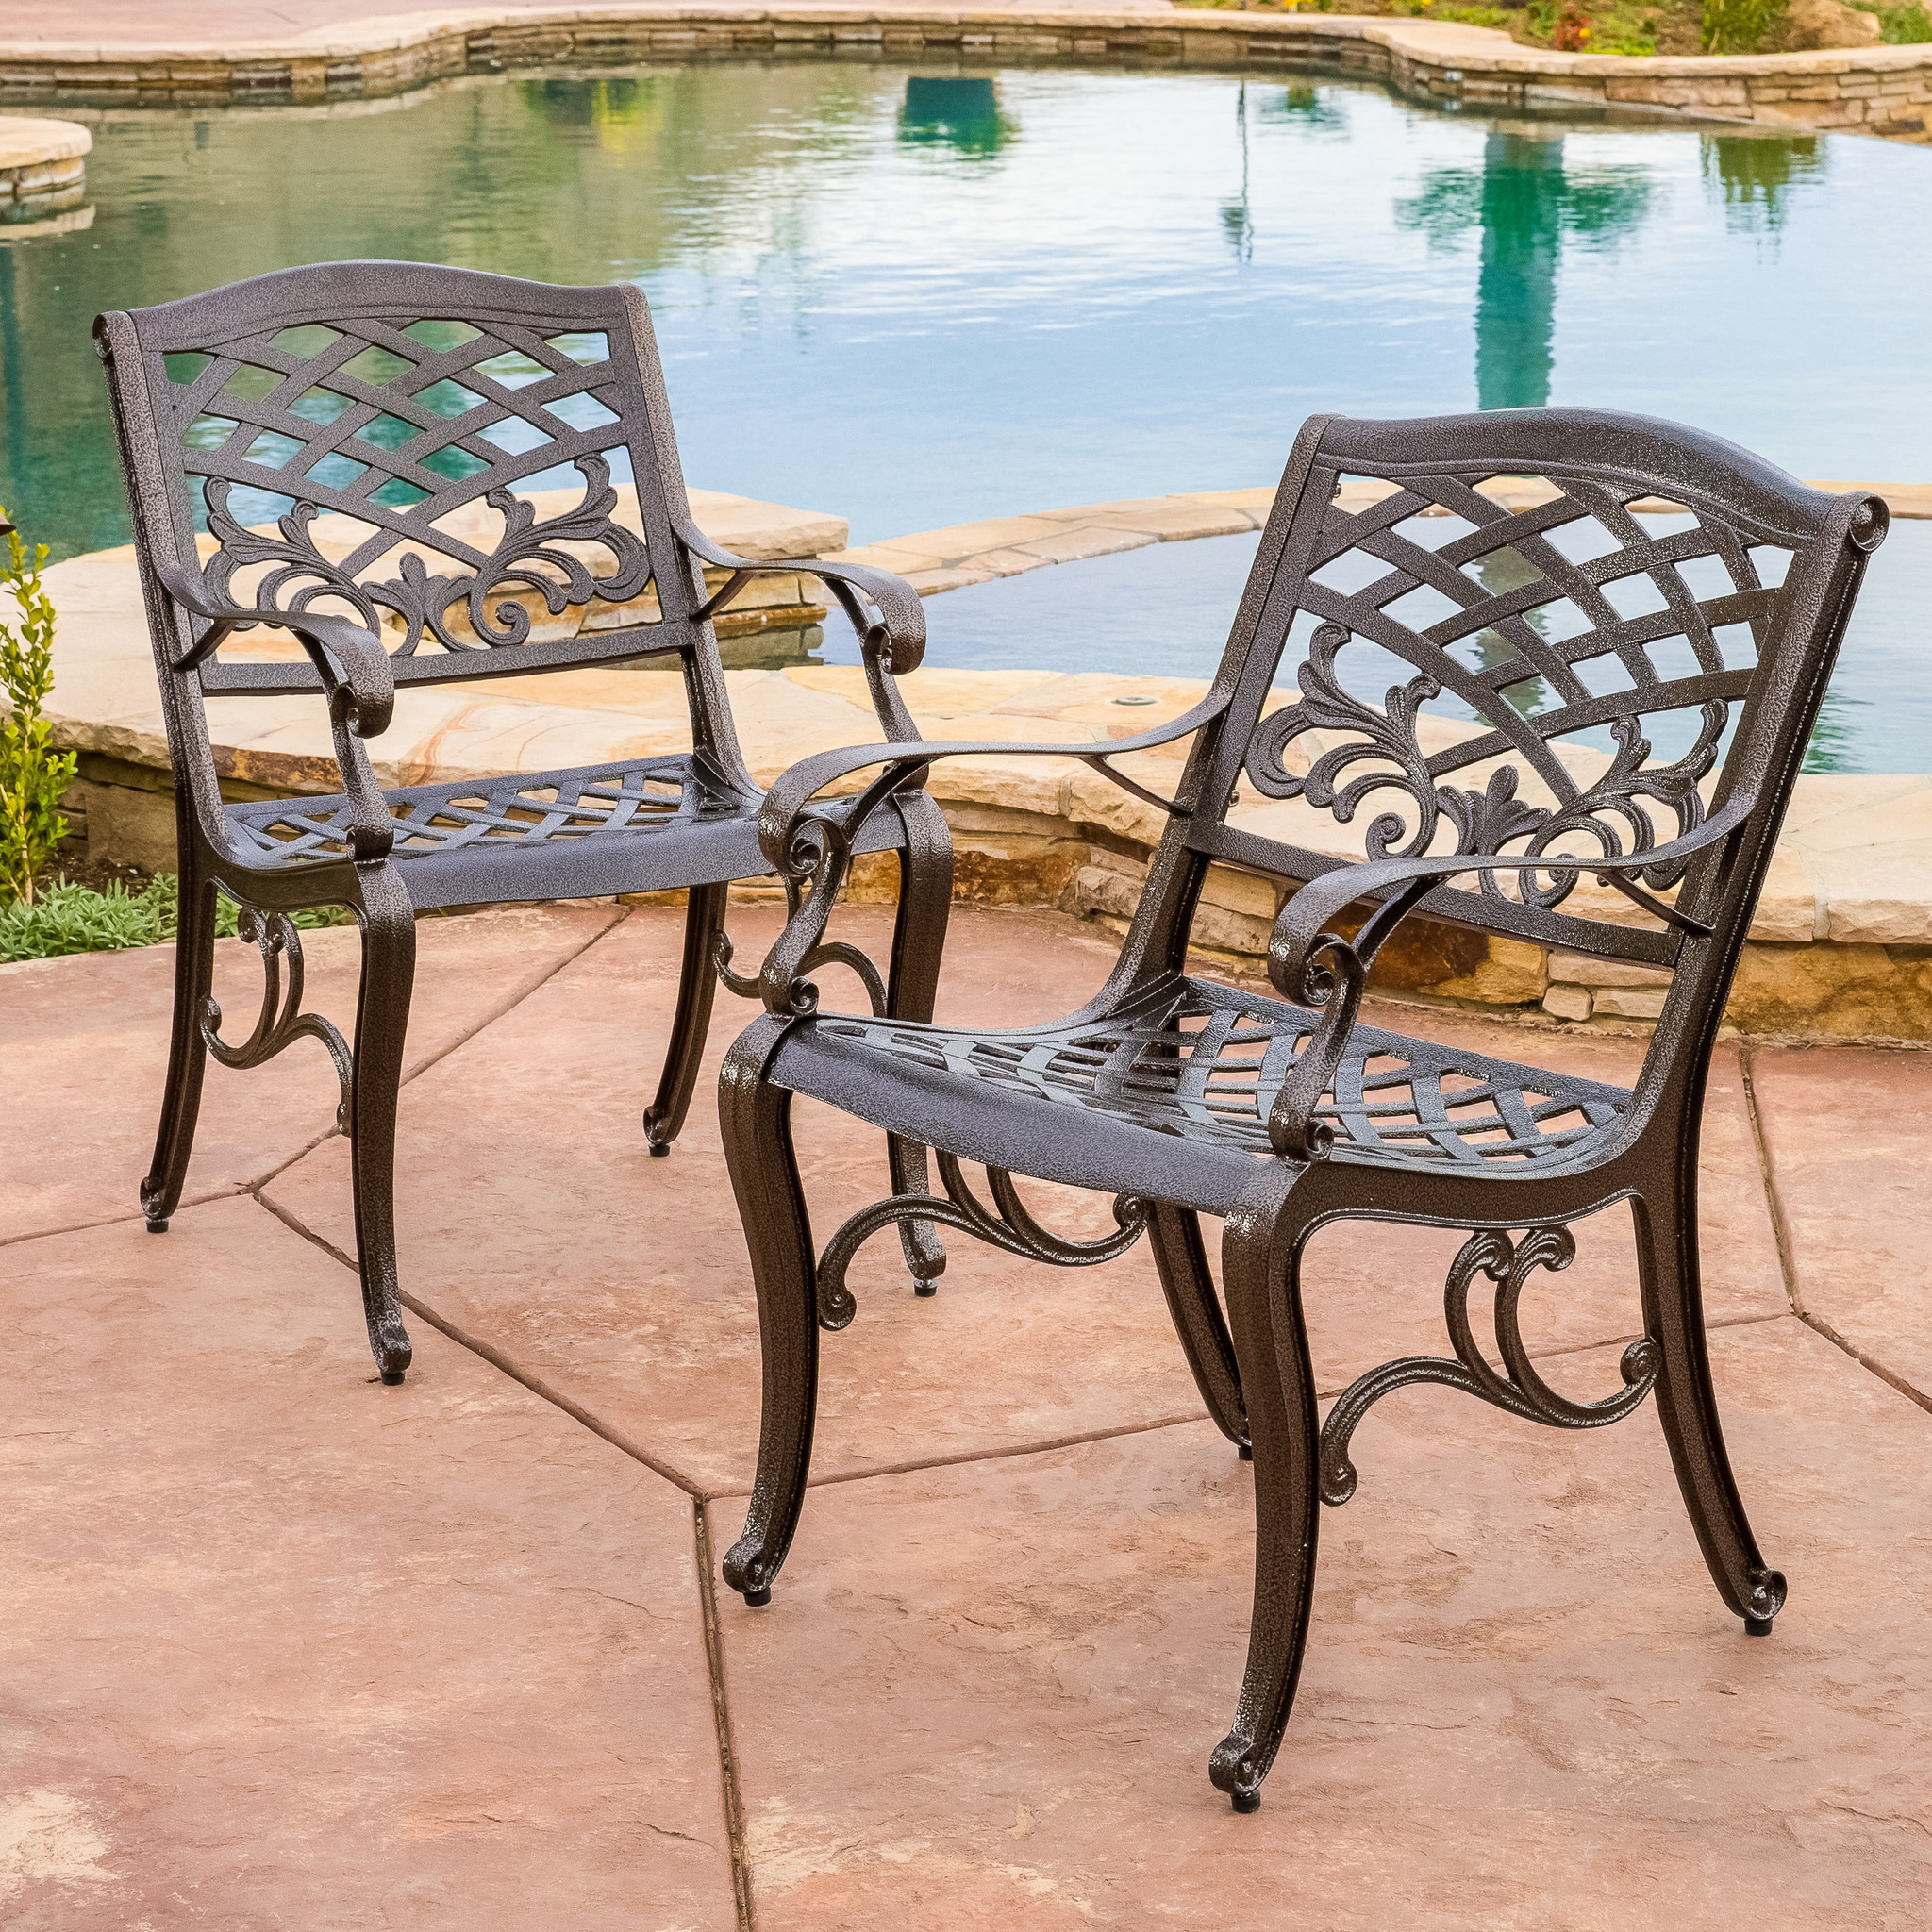 STRONGBACK Elite Camp Chair Walmart